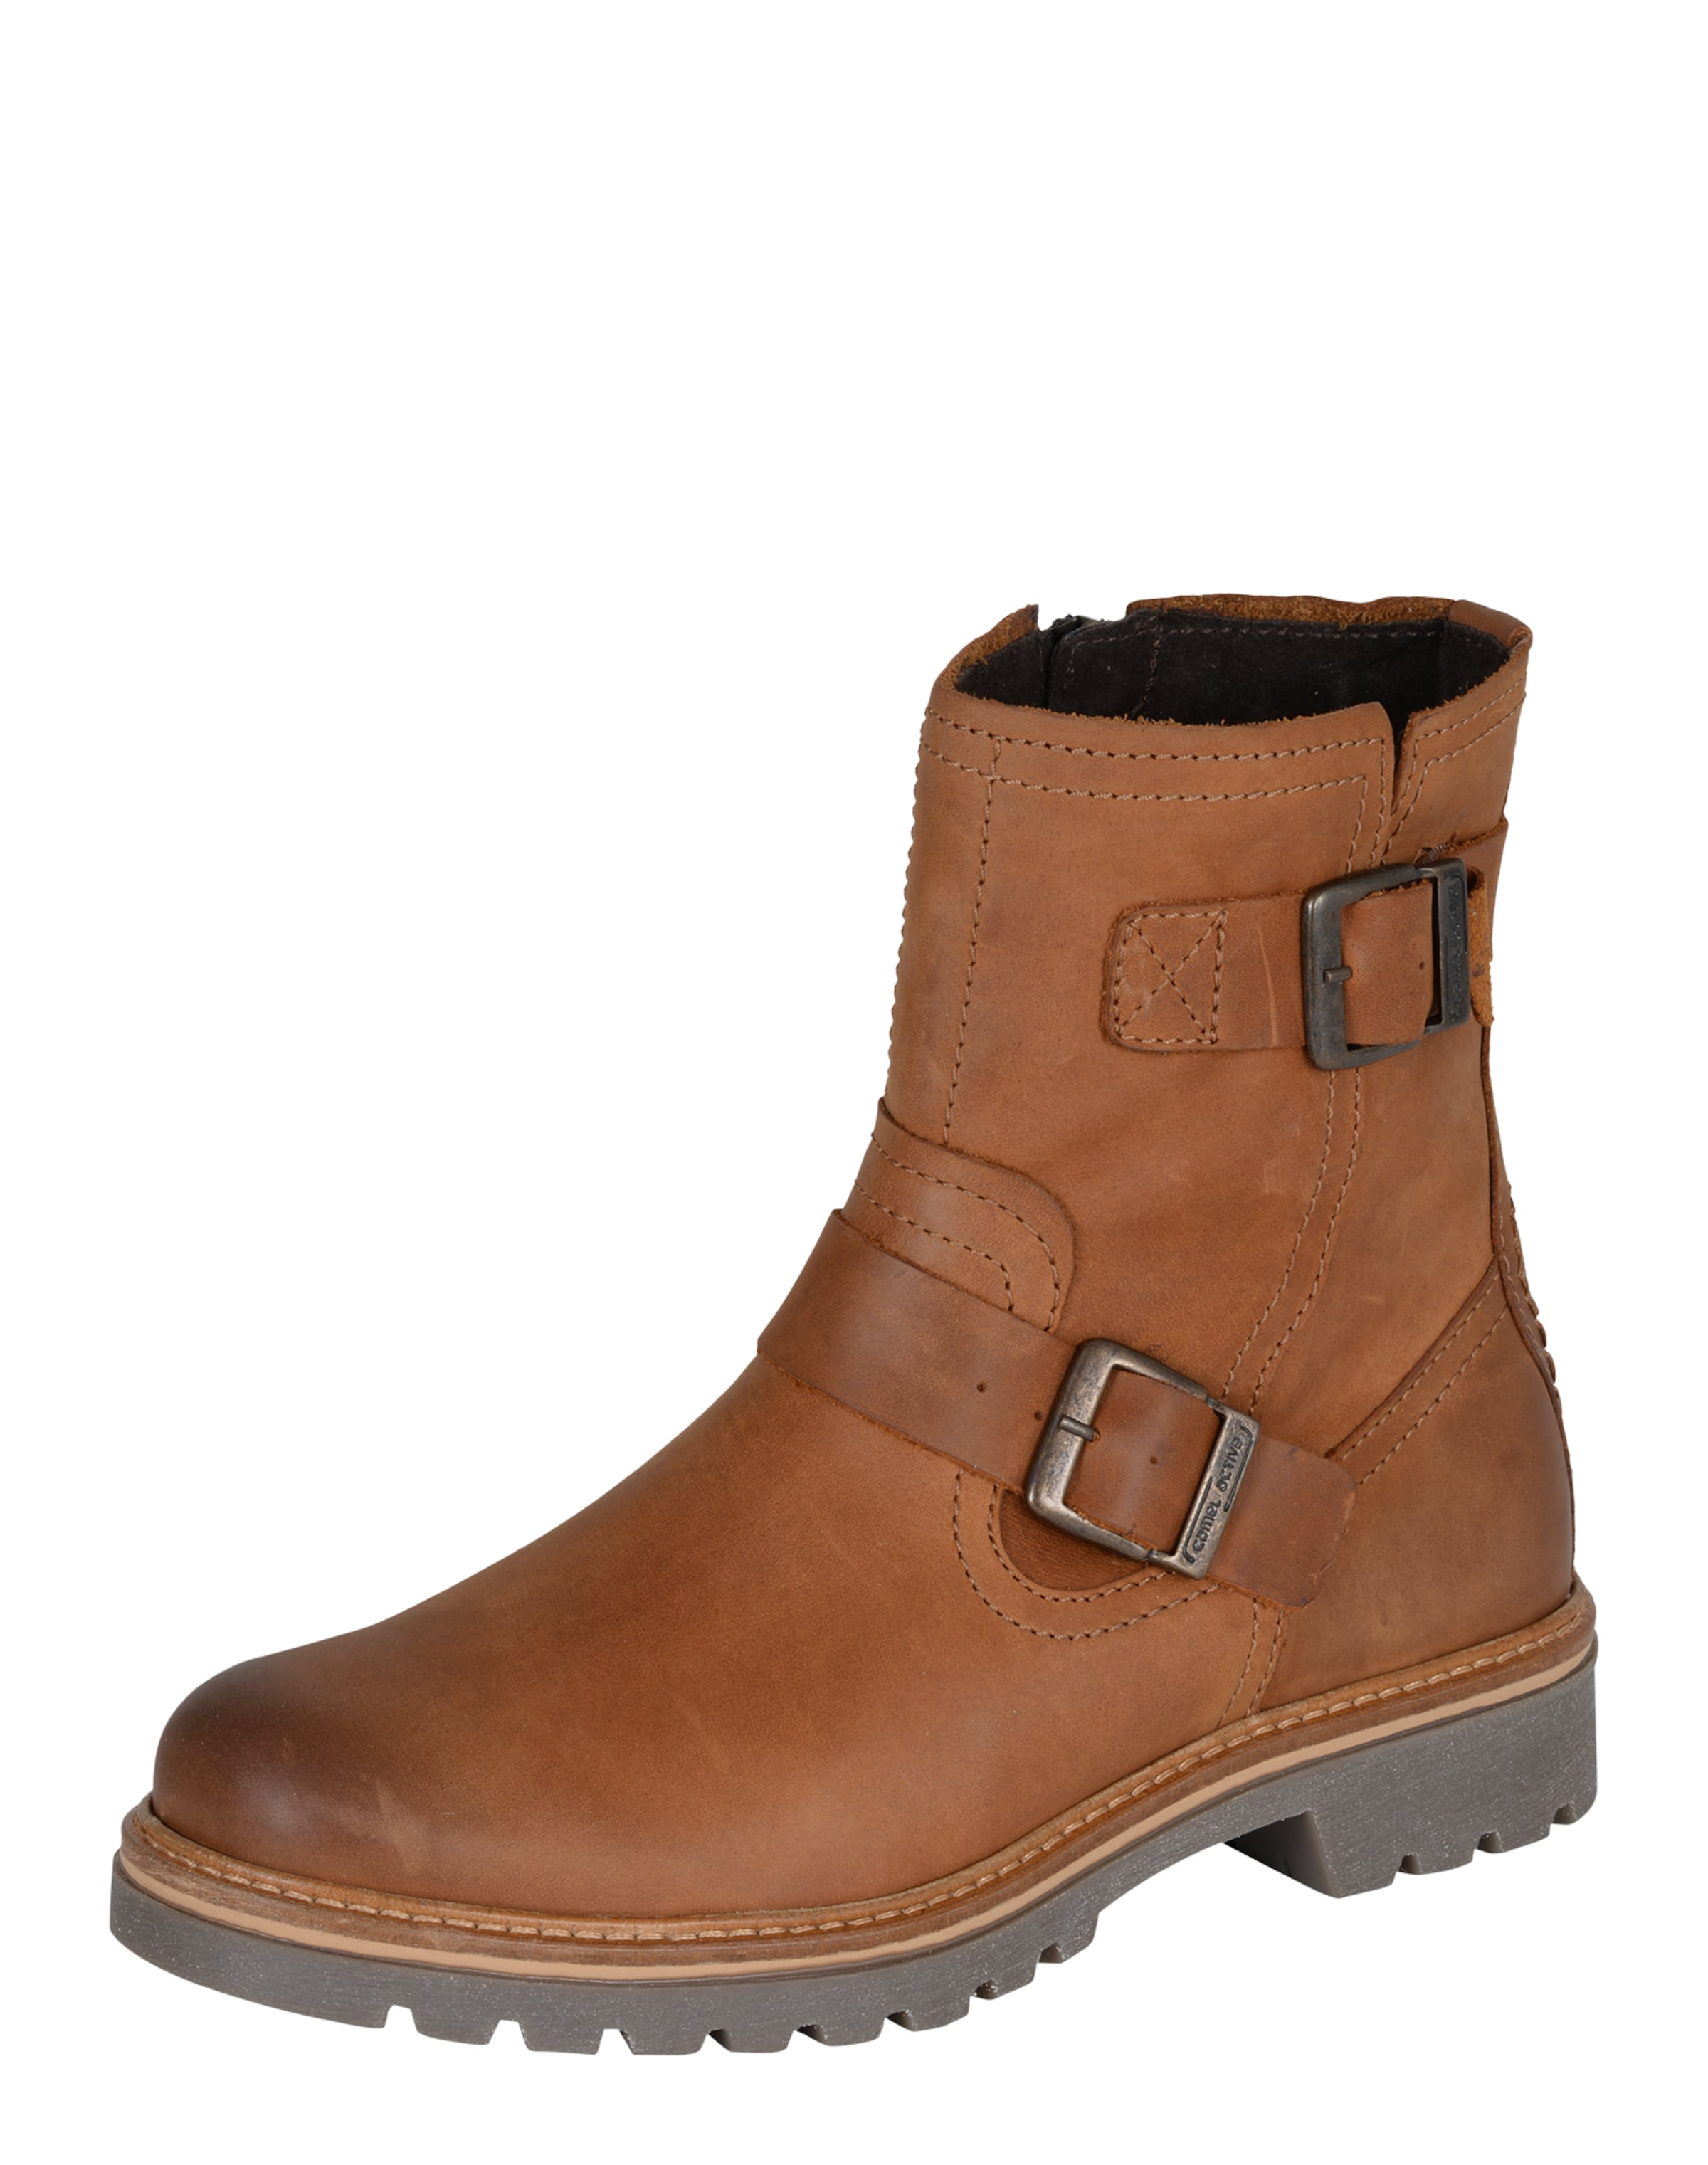 CAMEL ACTIVE 73 | Boots  Canberra 73 ACTIVE 895db0